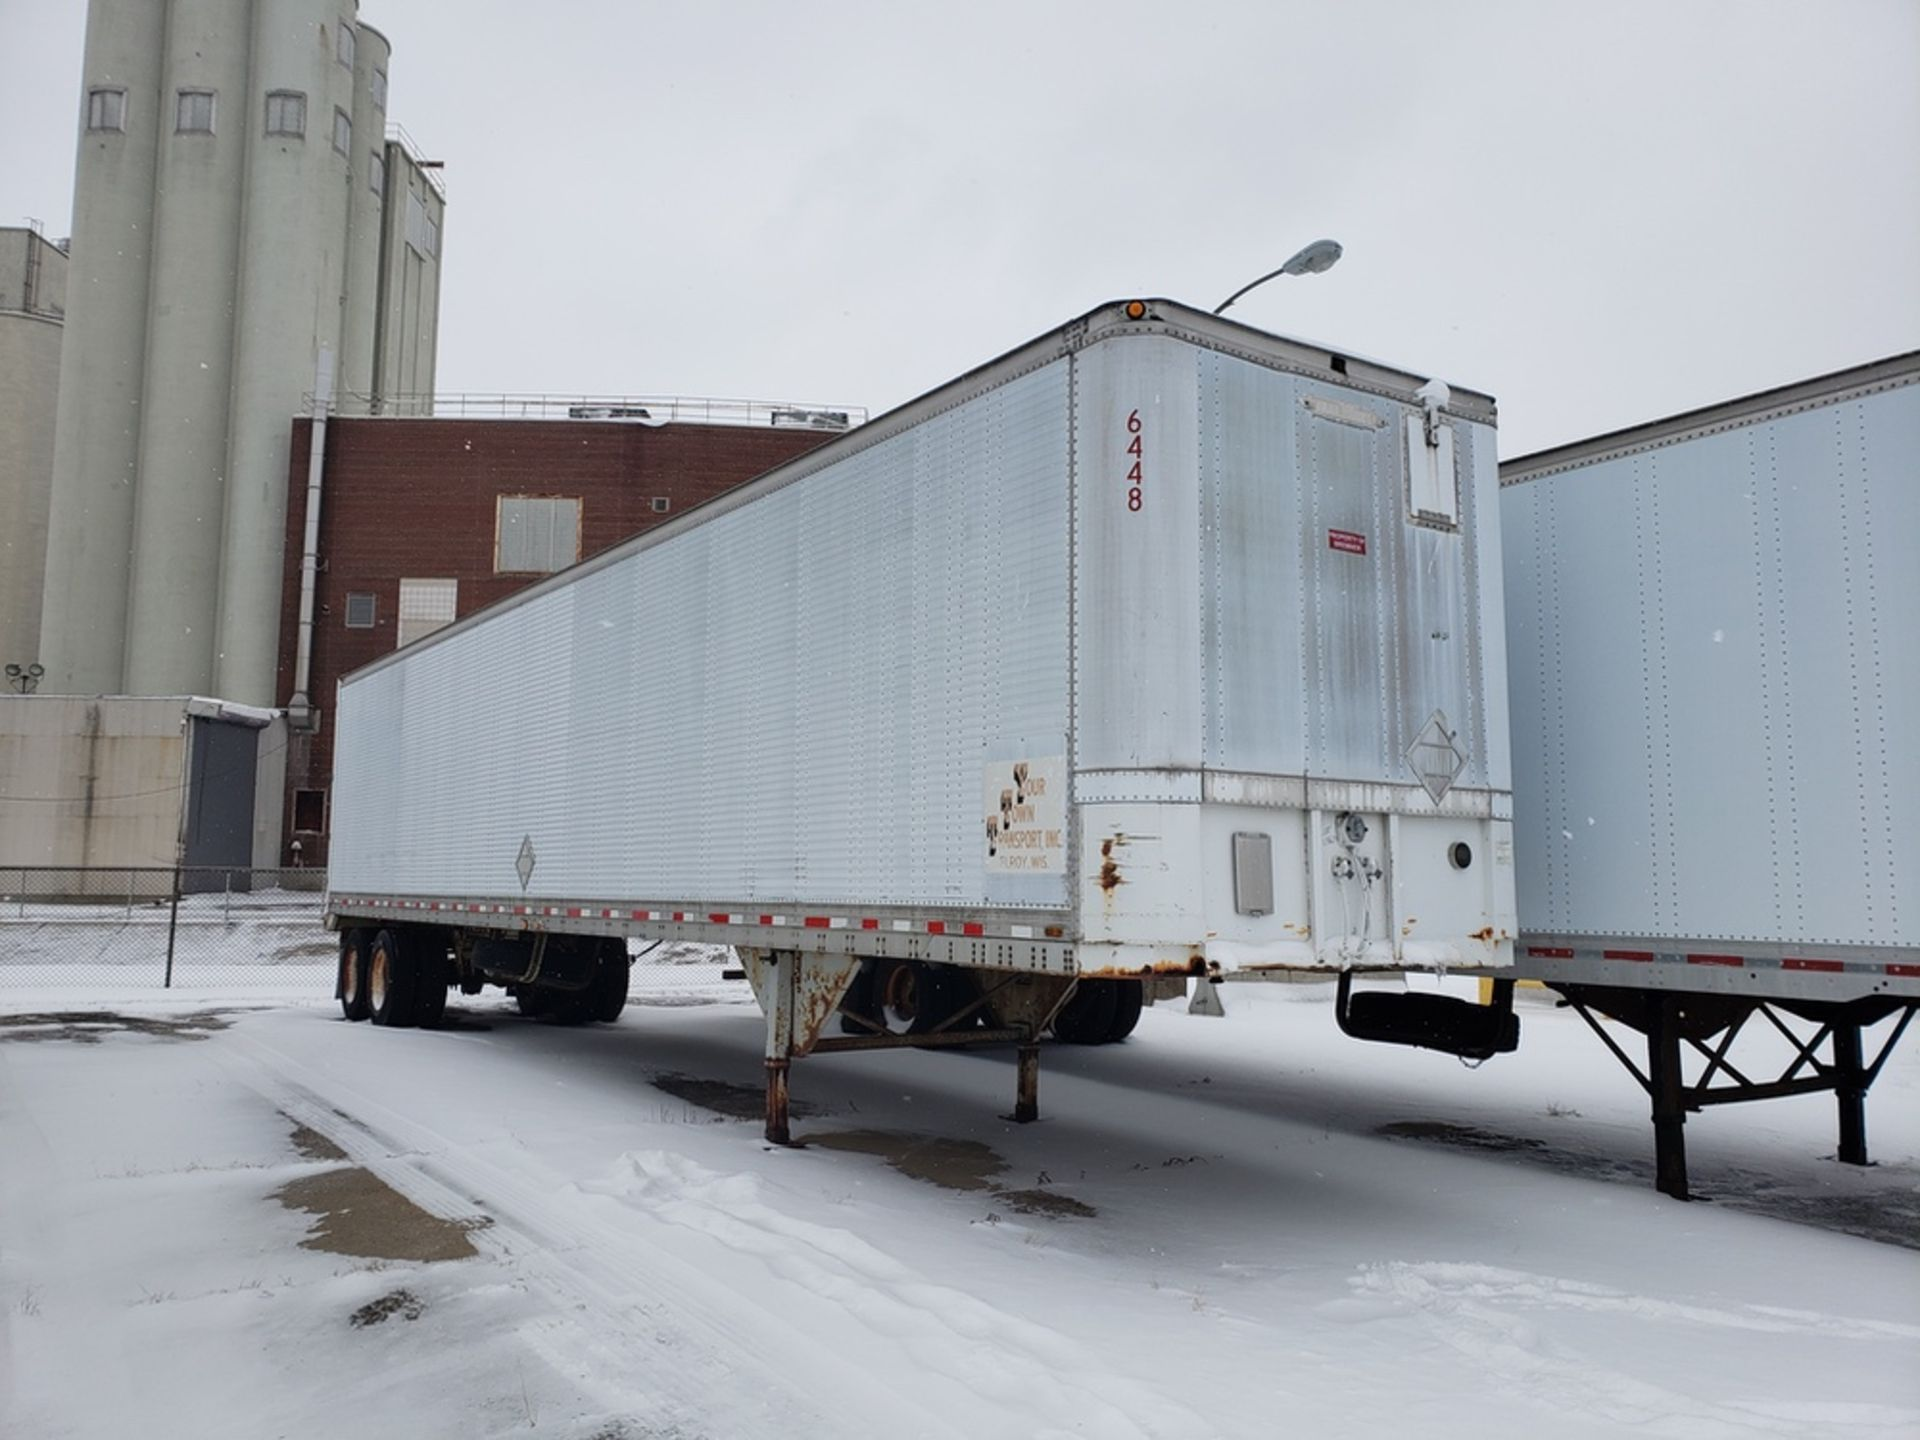 Lot 1567 - 53 Ft. Trailmobile Storage Trailer, (No Title Available | Rig Fee: Buyer to Remove